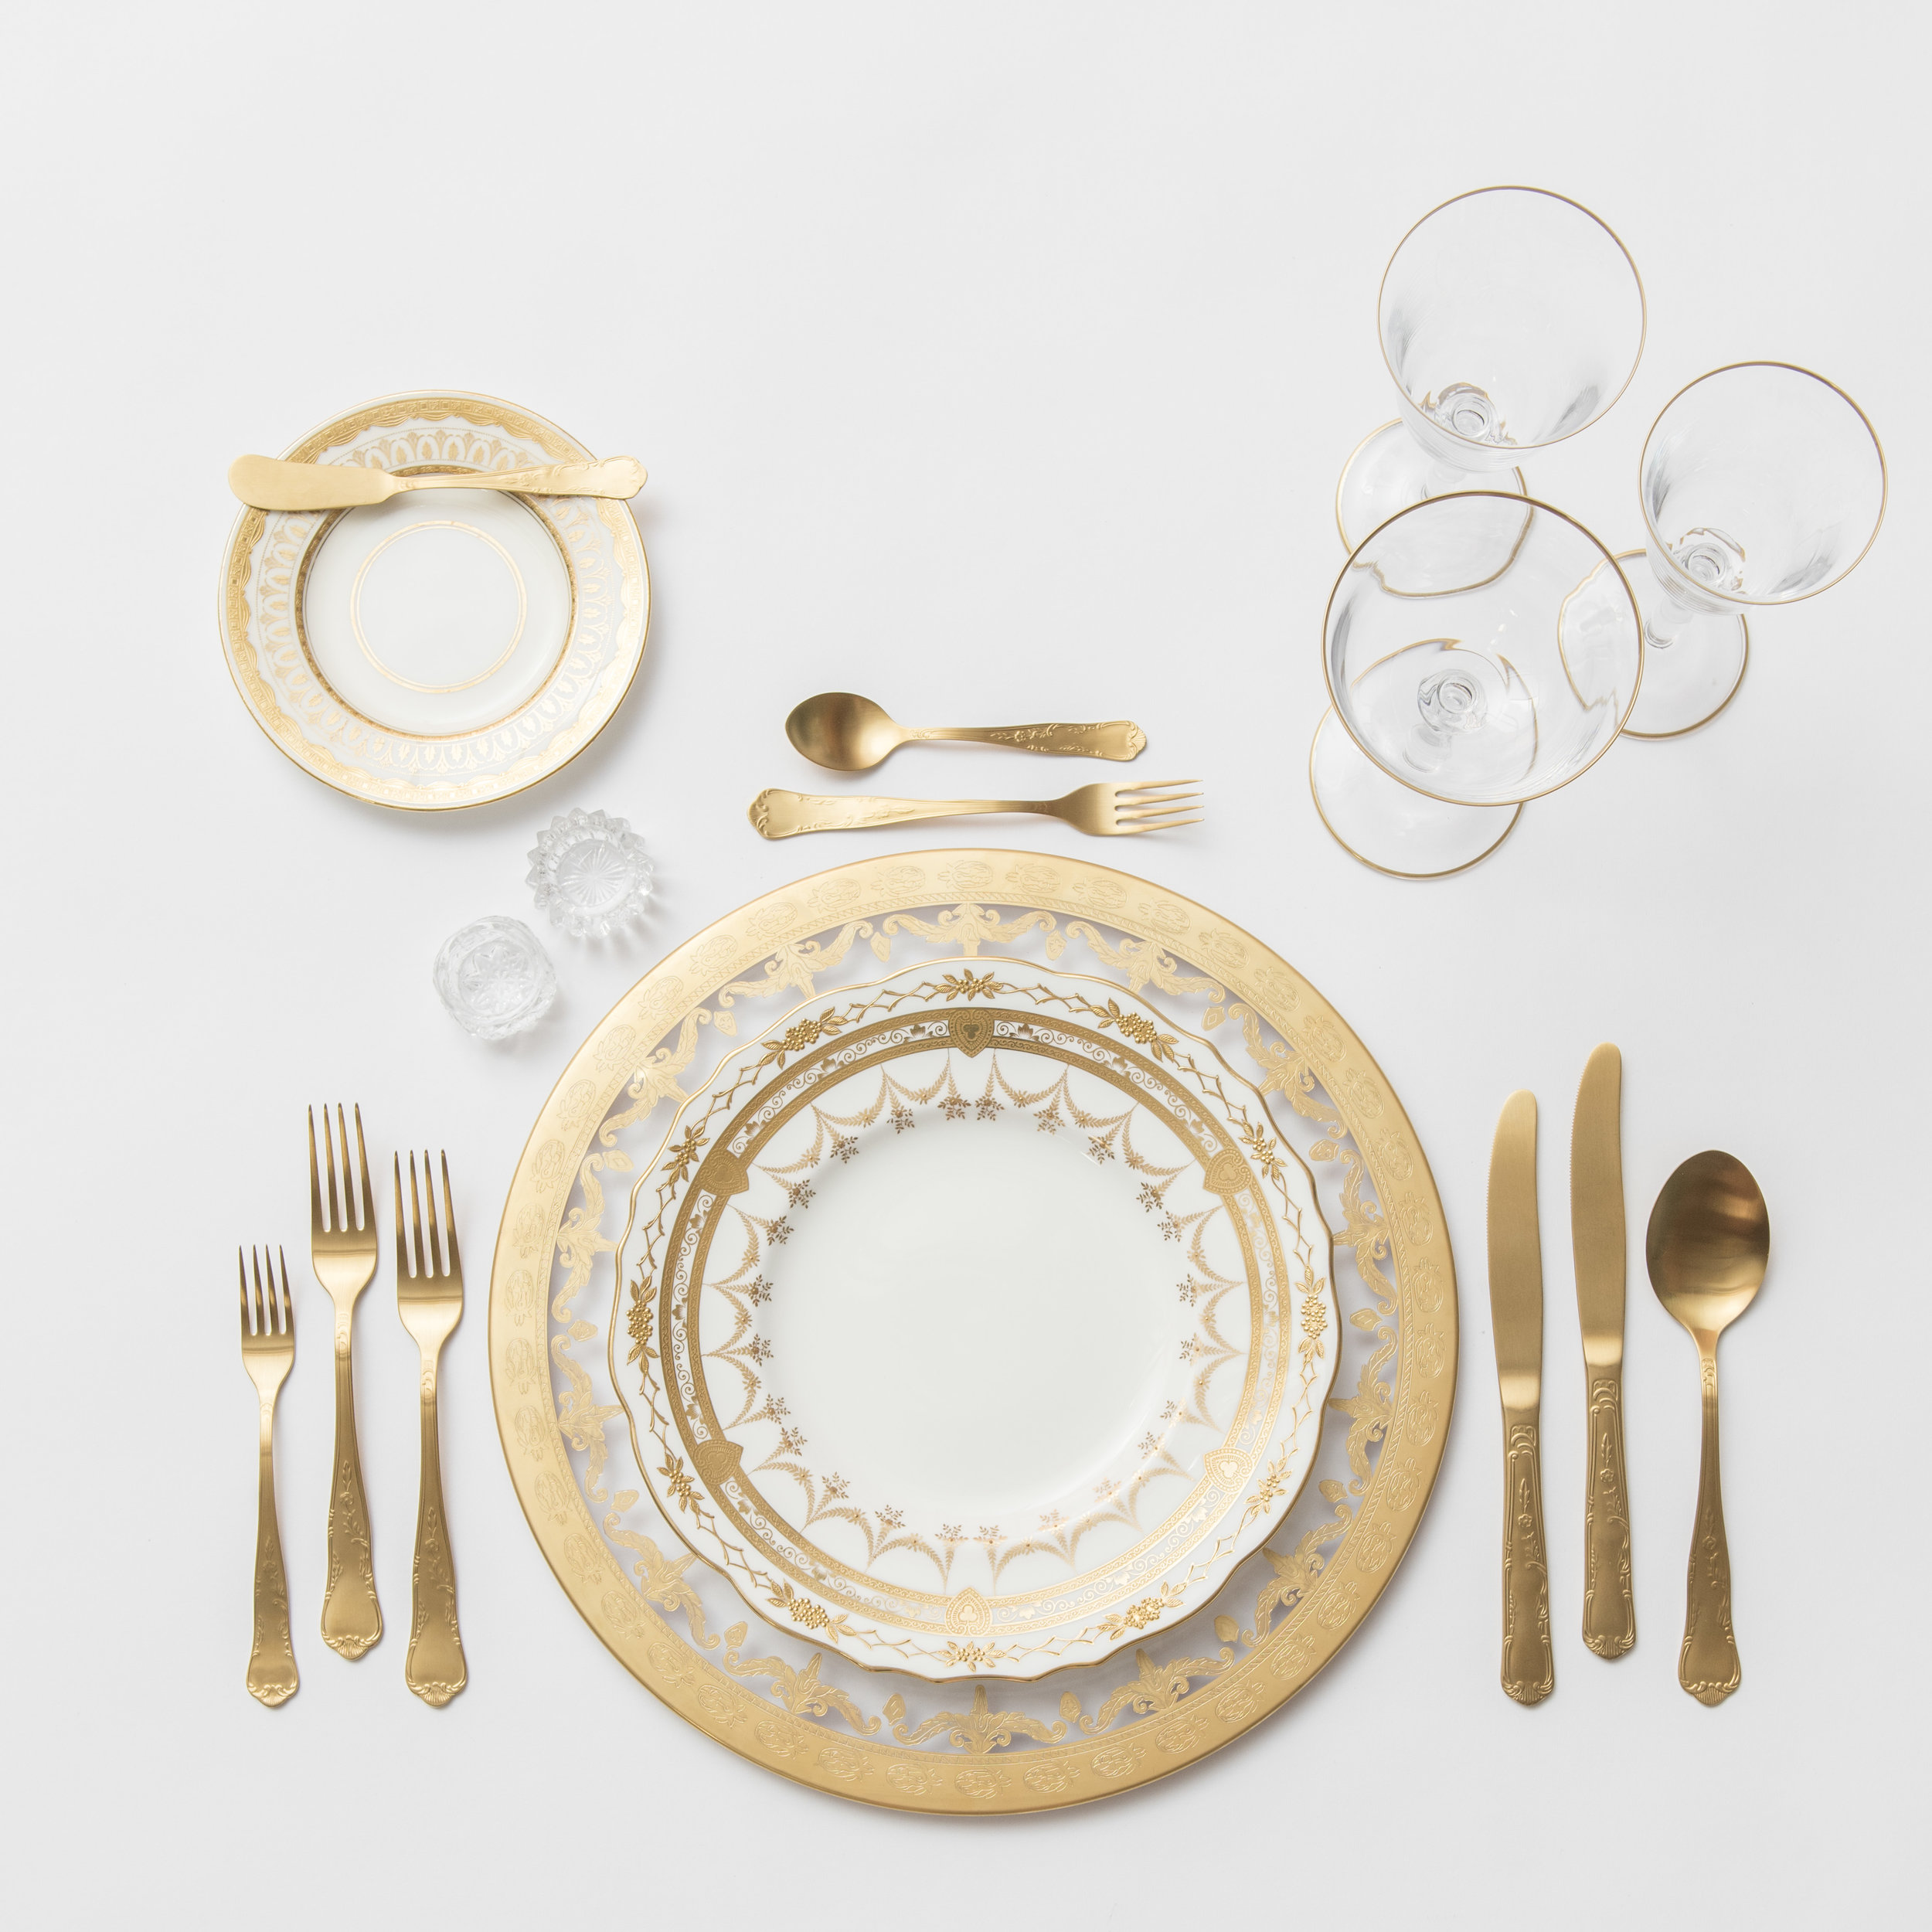 RENT: Versailles Glass Chargers in 24k Gold + Crown Gold Collection Vintage China + Chateau Flatware in Matte Gold + Chloe 24k Gold Rimmed Stemware + Antique Crystal Salt Cellars  SHOP: Chloe 24k Gold Rimmed Stemware